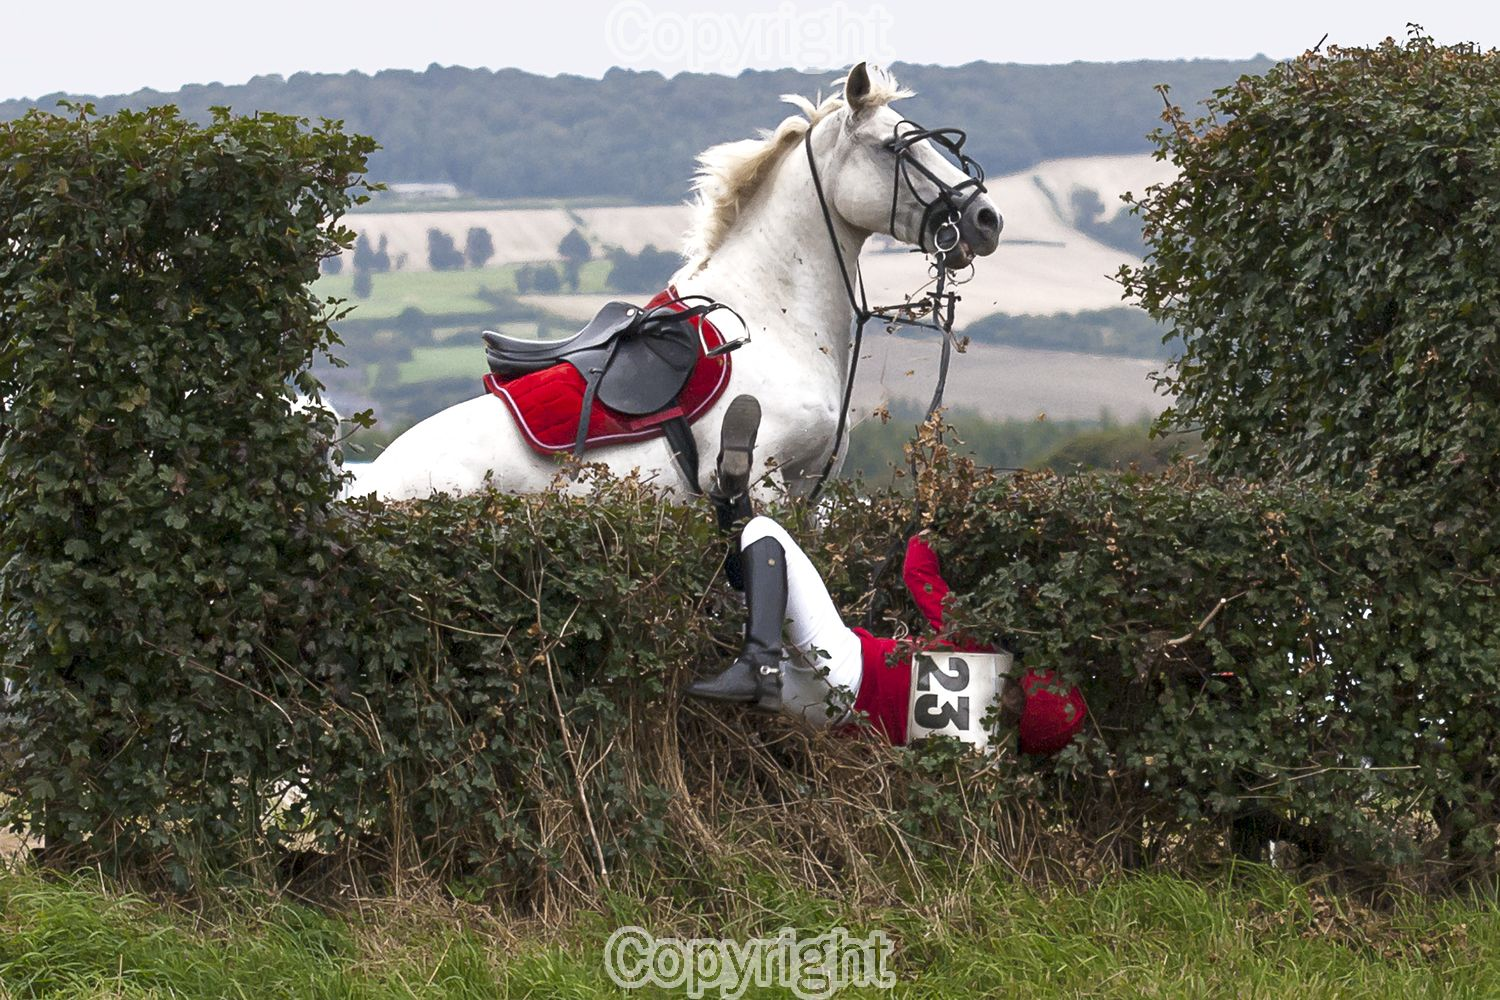 This picture was taken at a Hunter Trial and enabled me to enjoy my 2 hobbies Photography and The Horse. After walking the course I decided that this fence would prove the most challenging to both horse and rider, I positioned myself as near to straight on as I could and it wasn't too long before this happened. Horse and rider were fine afterwards.